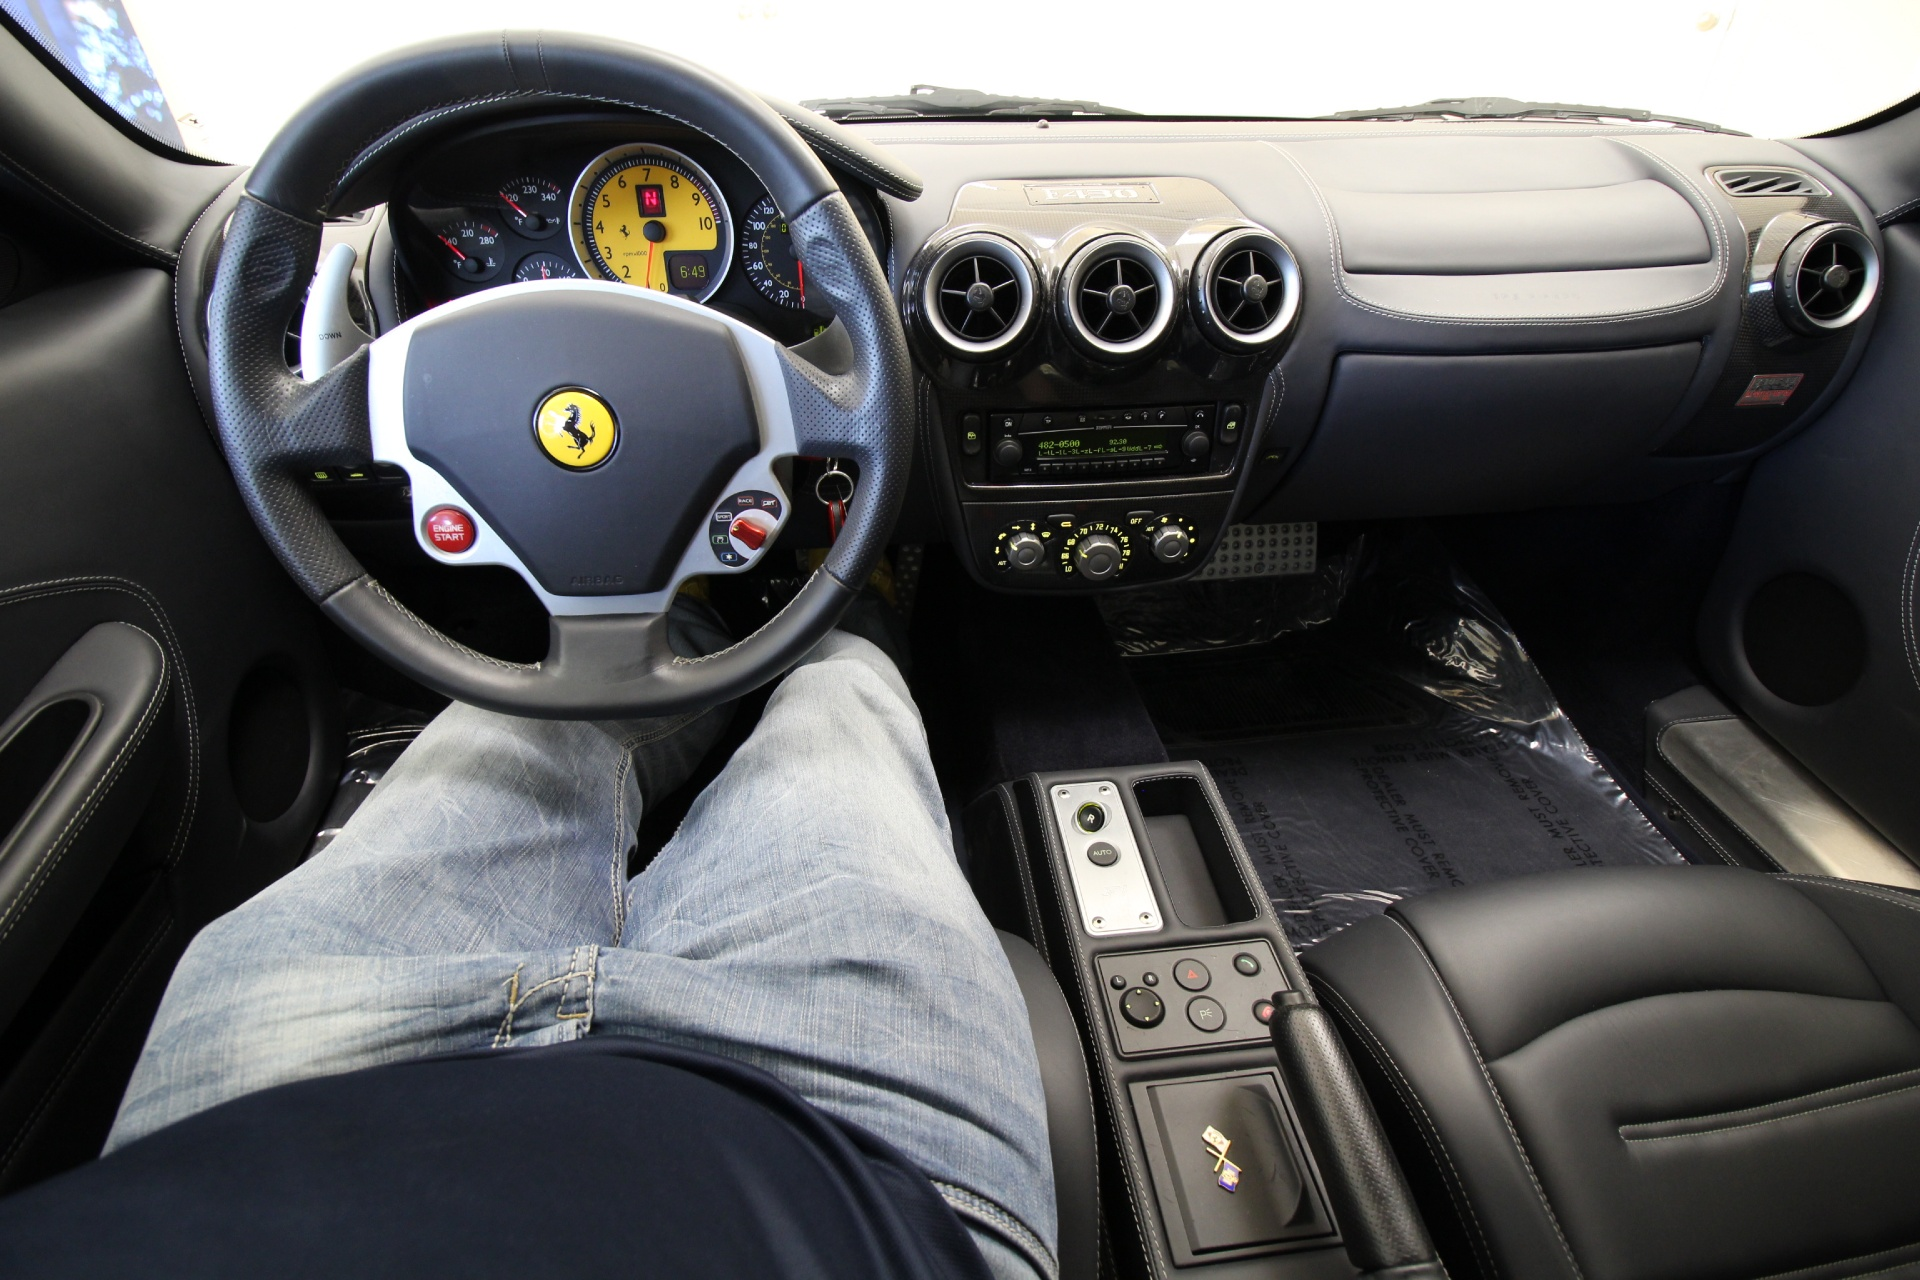 Used 2005 Ferrari F430 COUPE,SUPERB CONDITION,SHIELDS,RED CALIPERS,CHALLENGE RIMS | Albany, NY